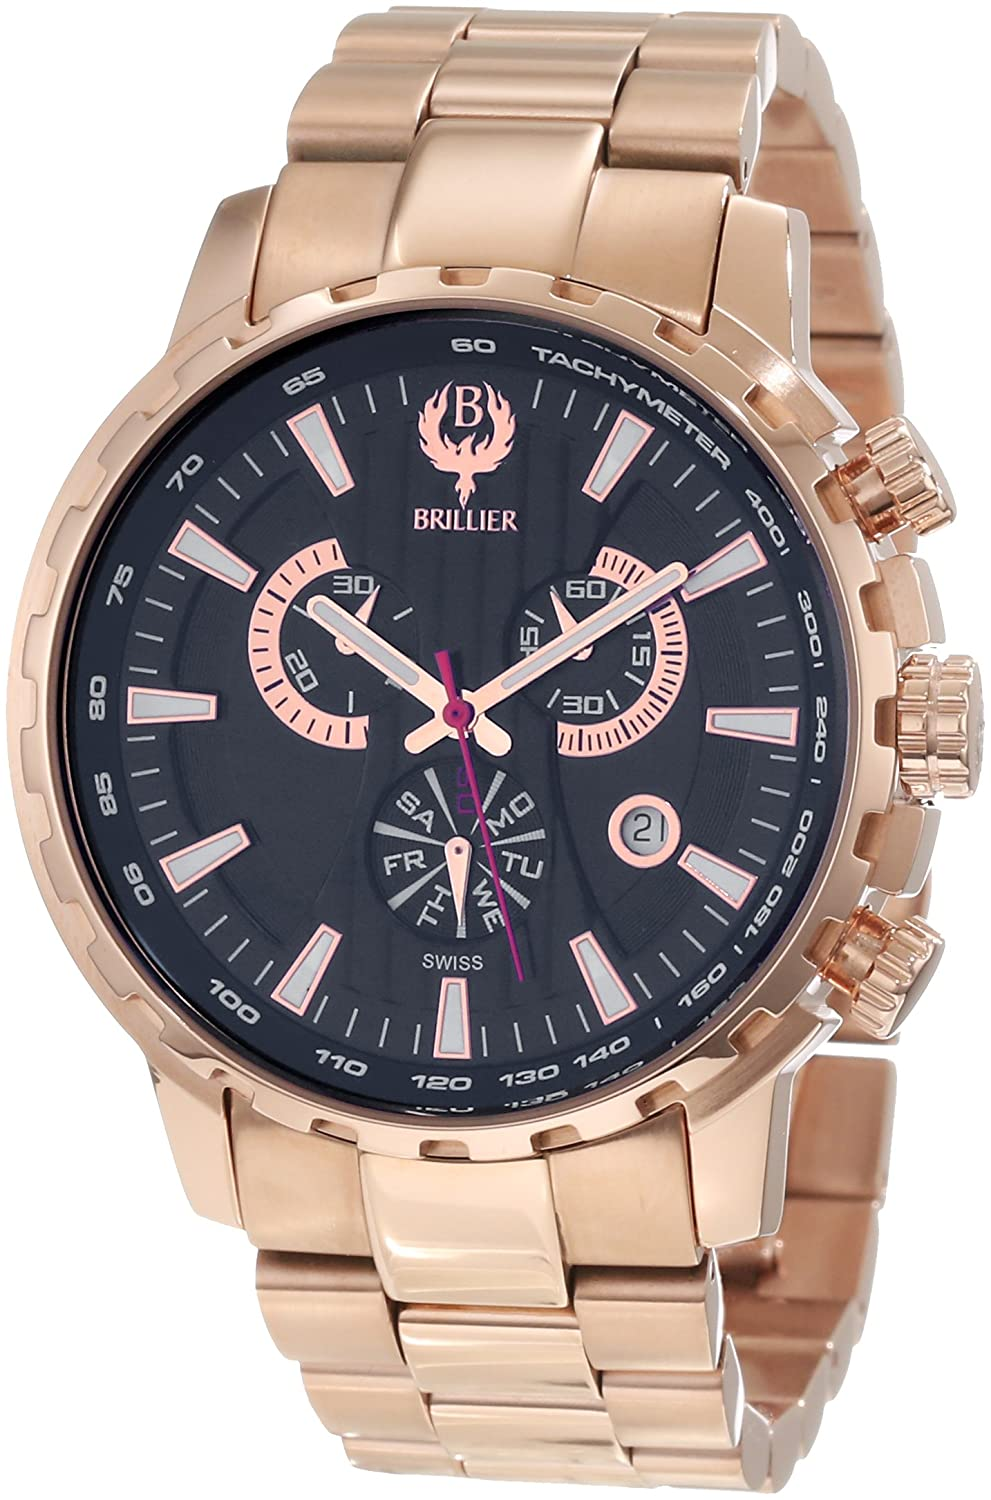 Brillier Herren 16-01 Endurer Rose Gold Chronograph Swiss Quartz Armbanduhr